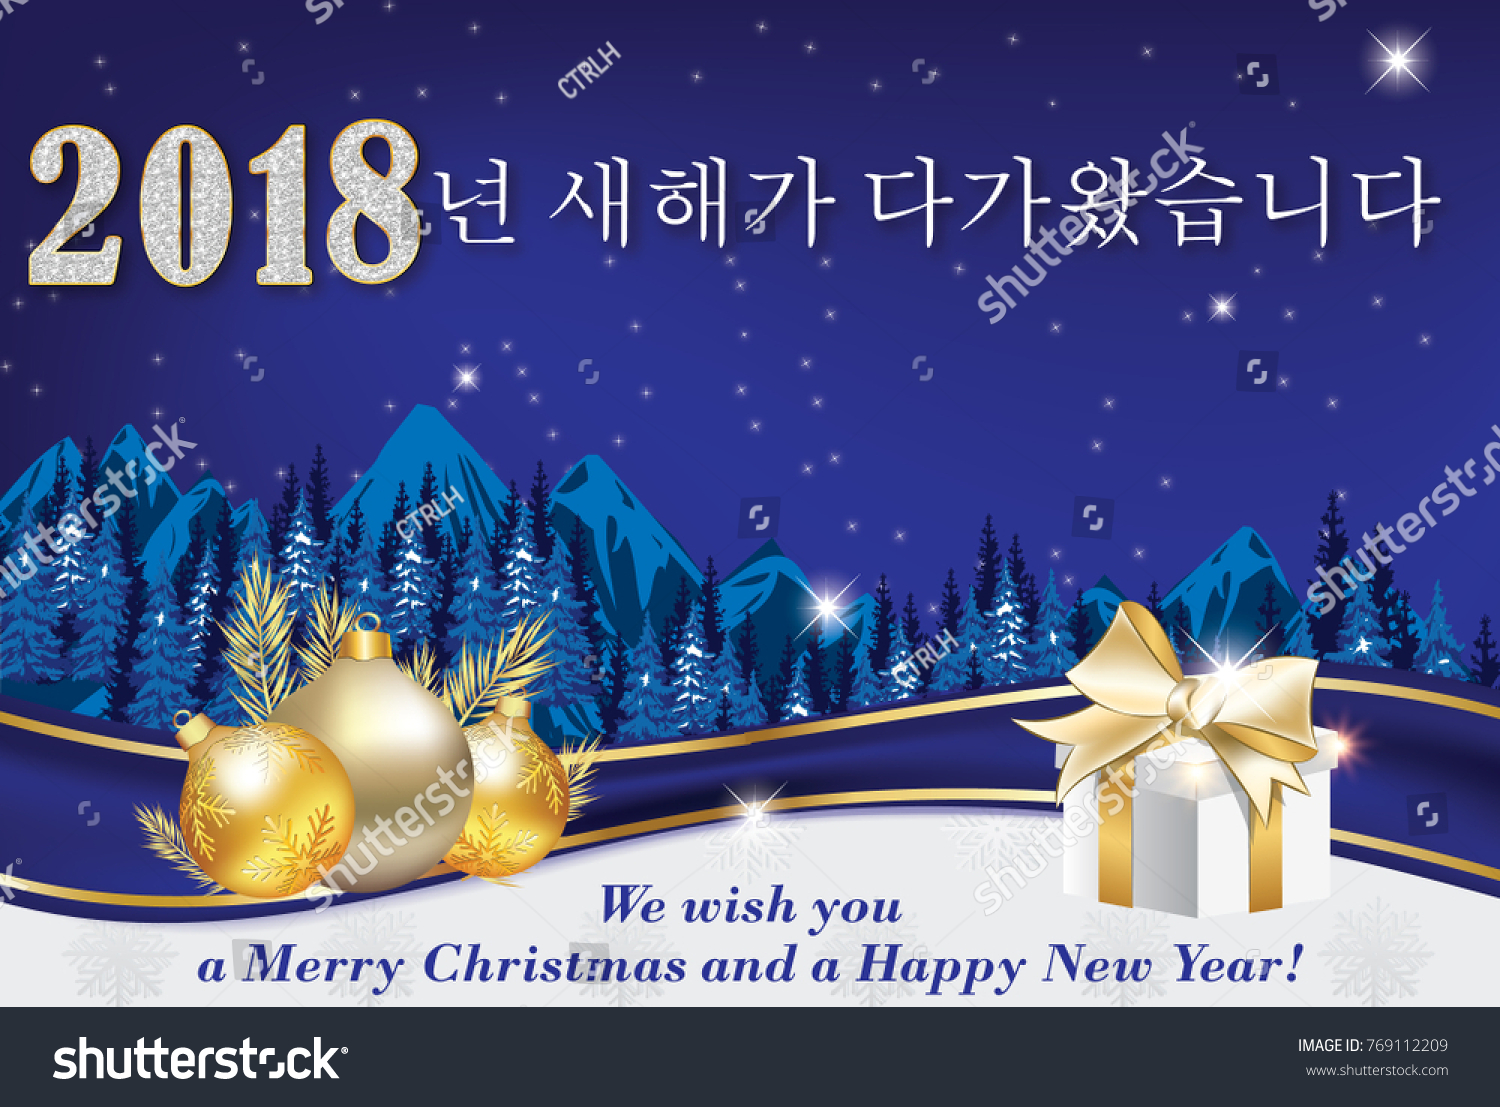 2018 korean business christmas new year greeting card with message written in korean and english